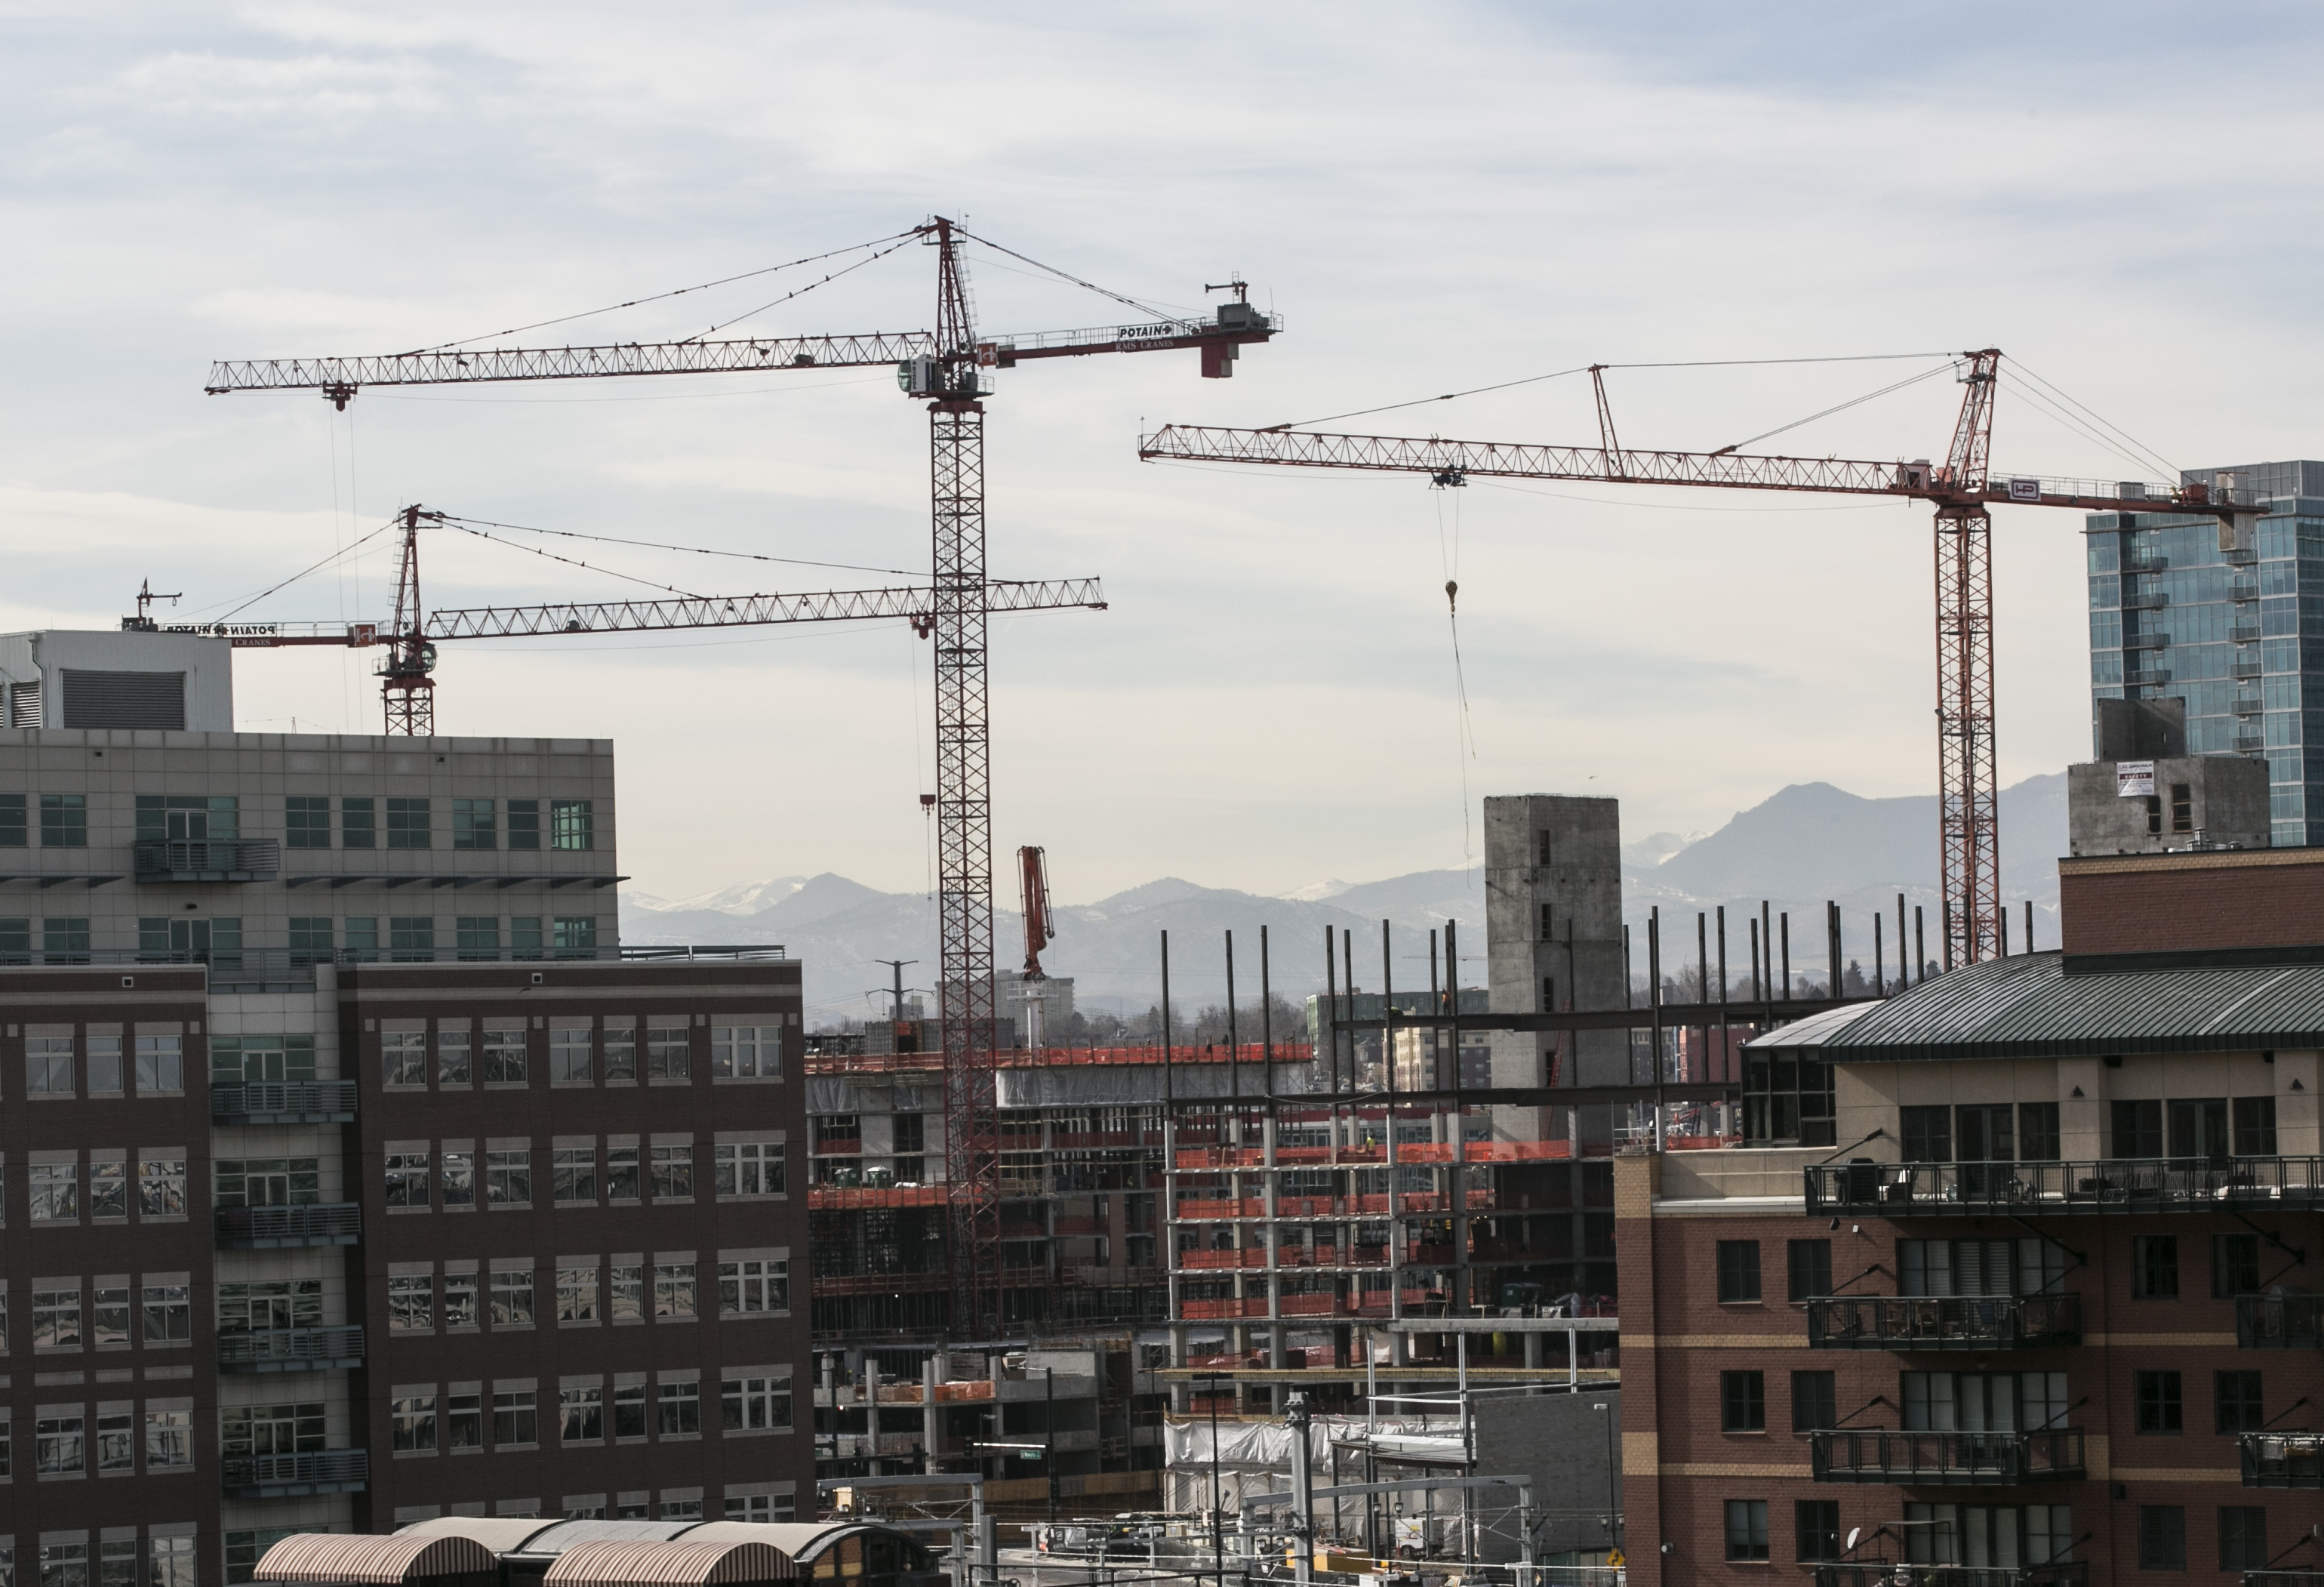 Denver Construction Is A-Boomin', But For How Long? | Colorado